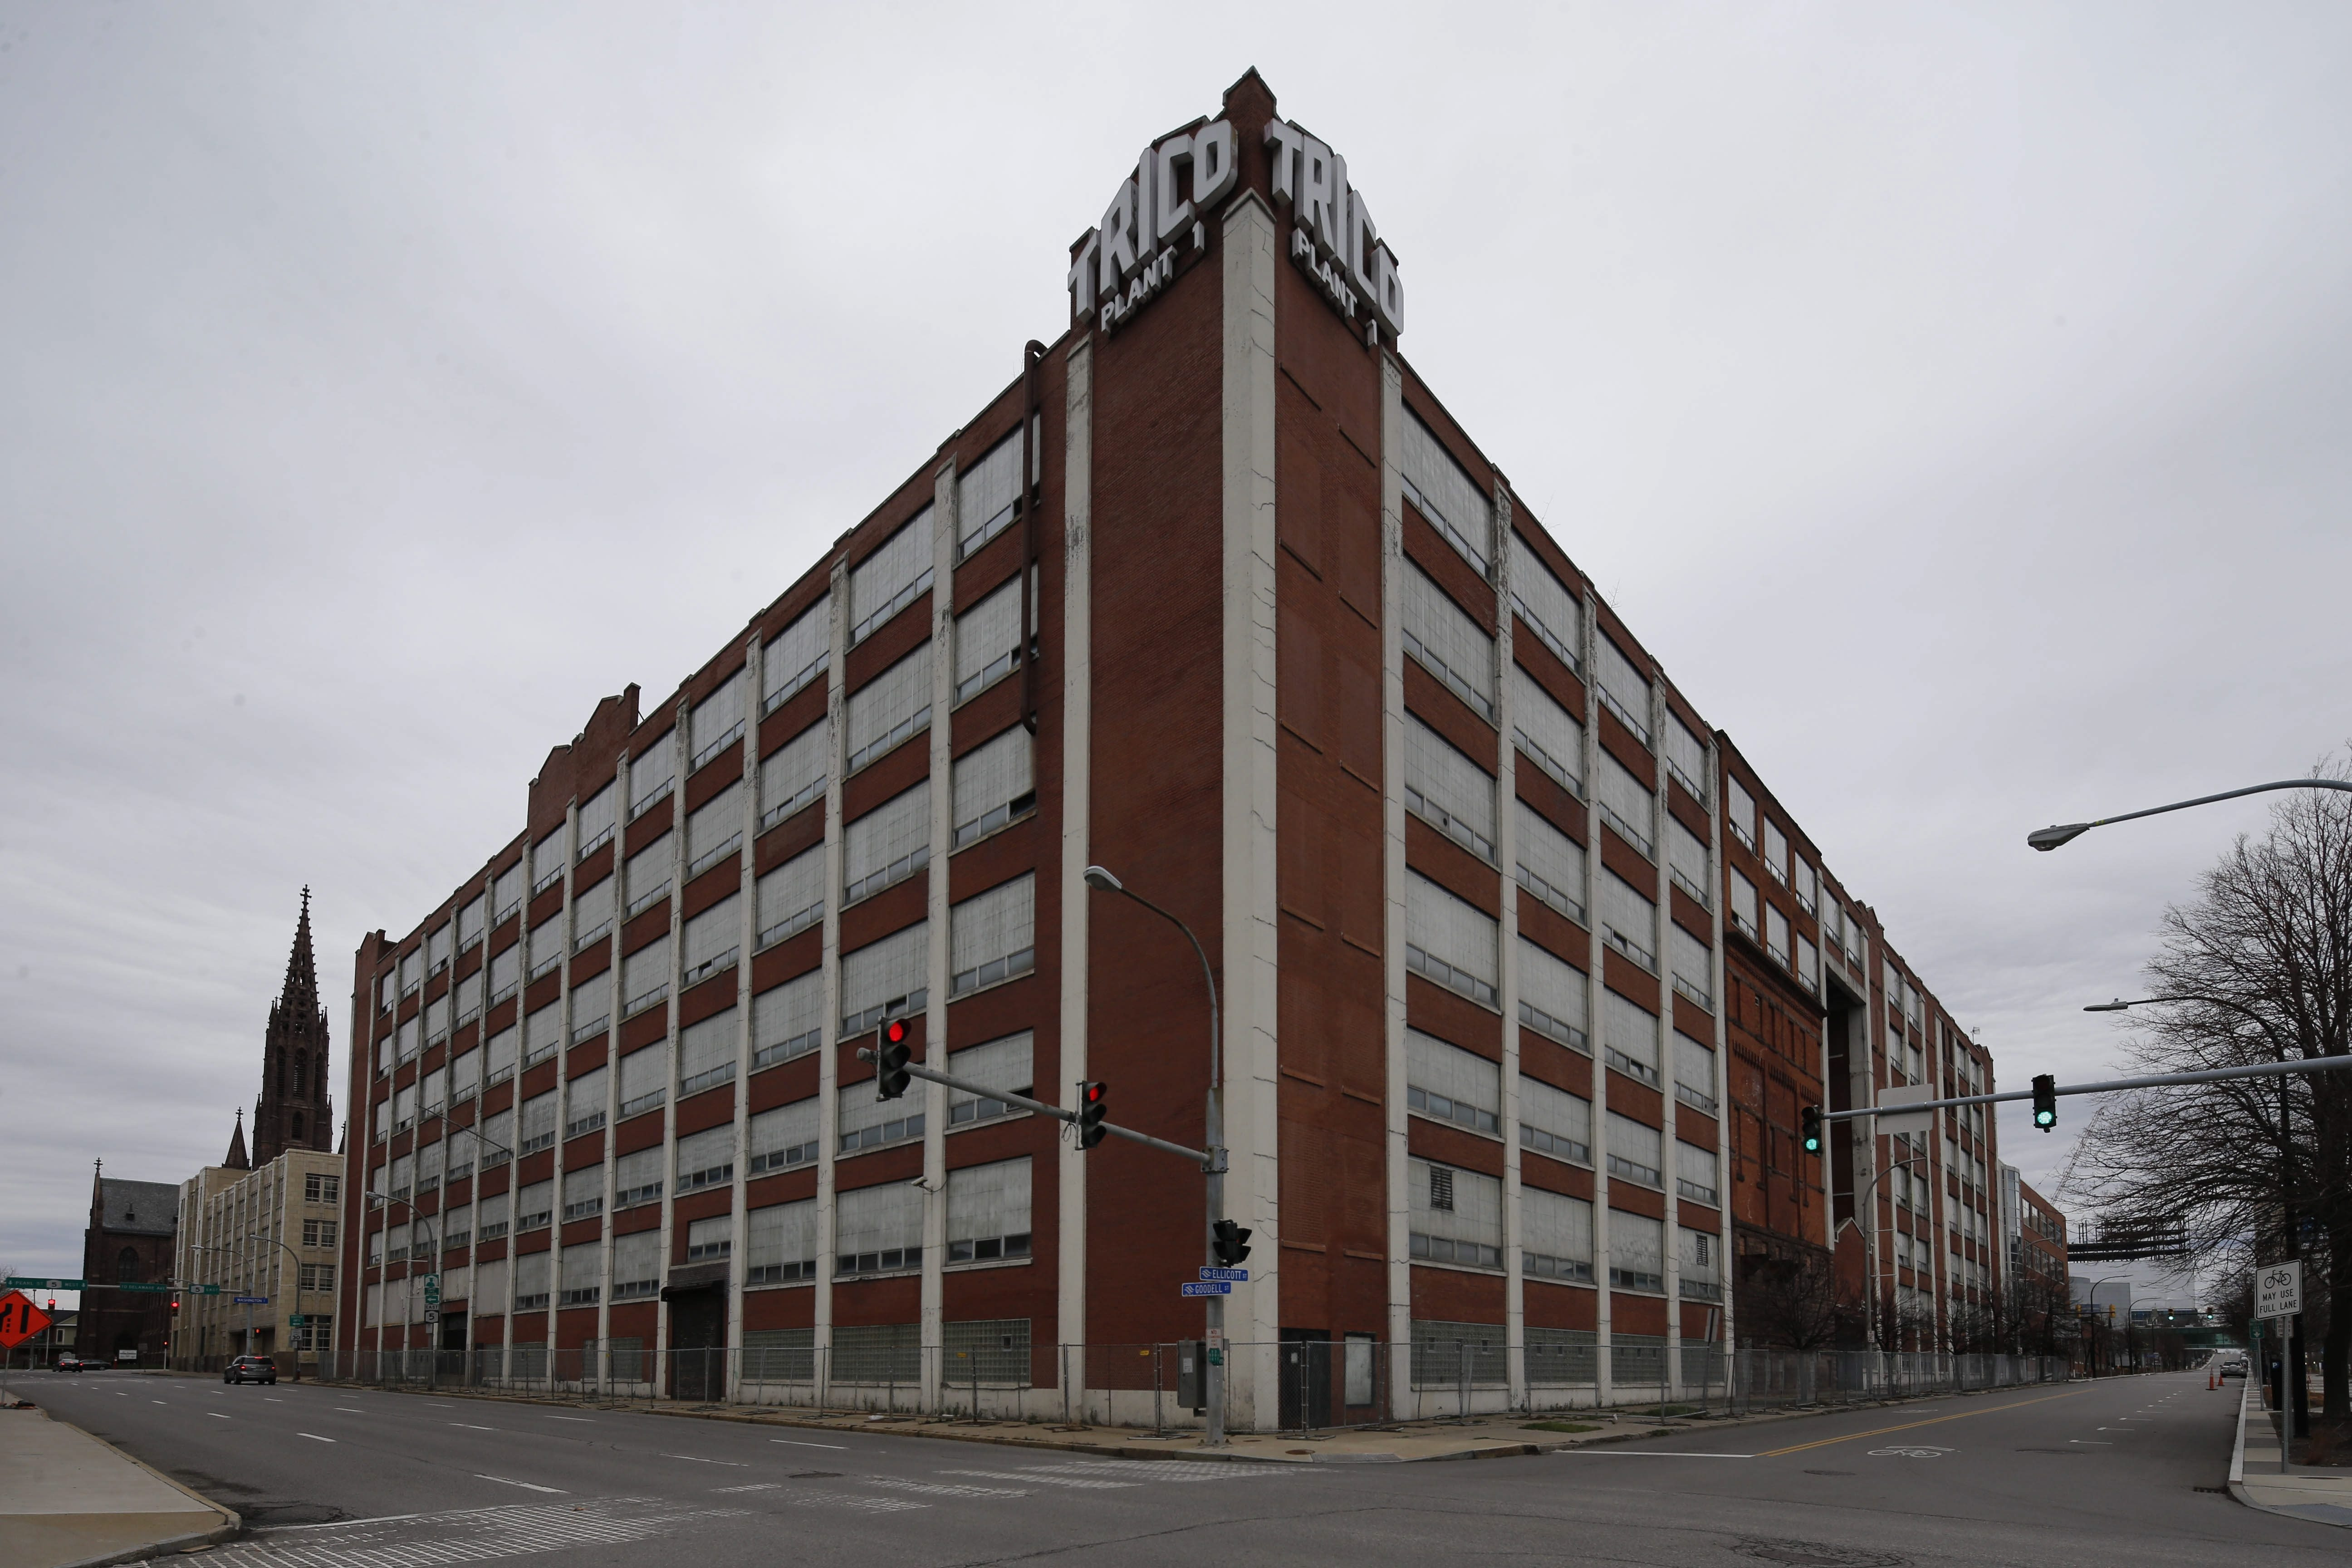 The sprawling former Trico building, at Goodell and Washington streets, will be converted into a hotel, apartments, and retail and commercial space geared to serving the growing medical campus community.